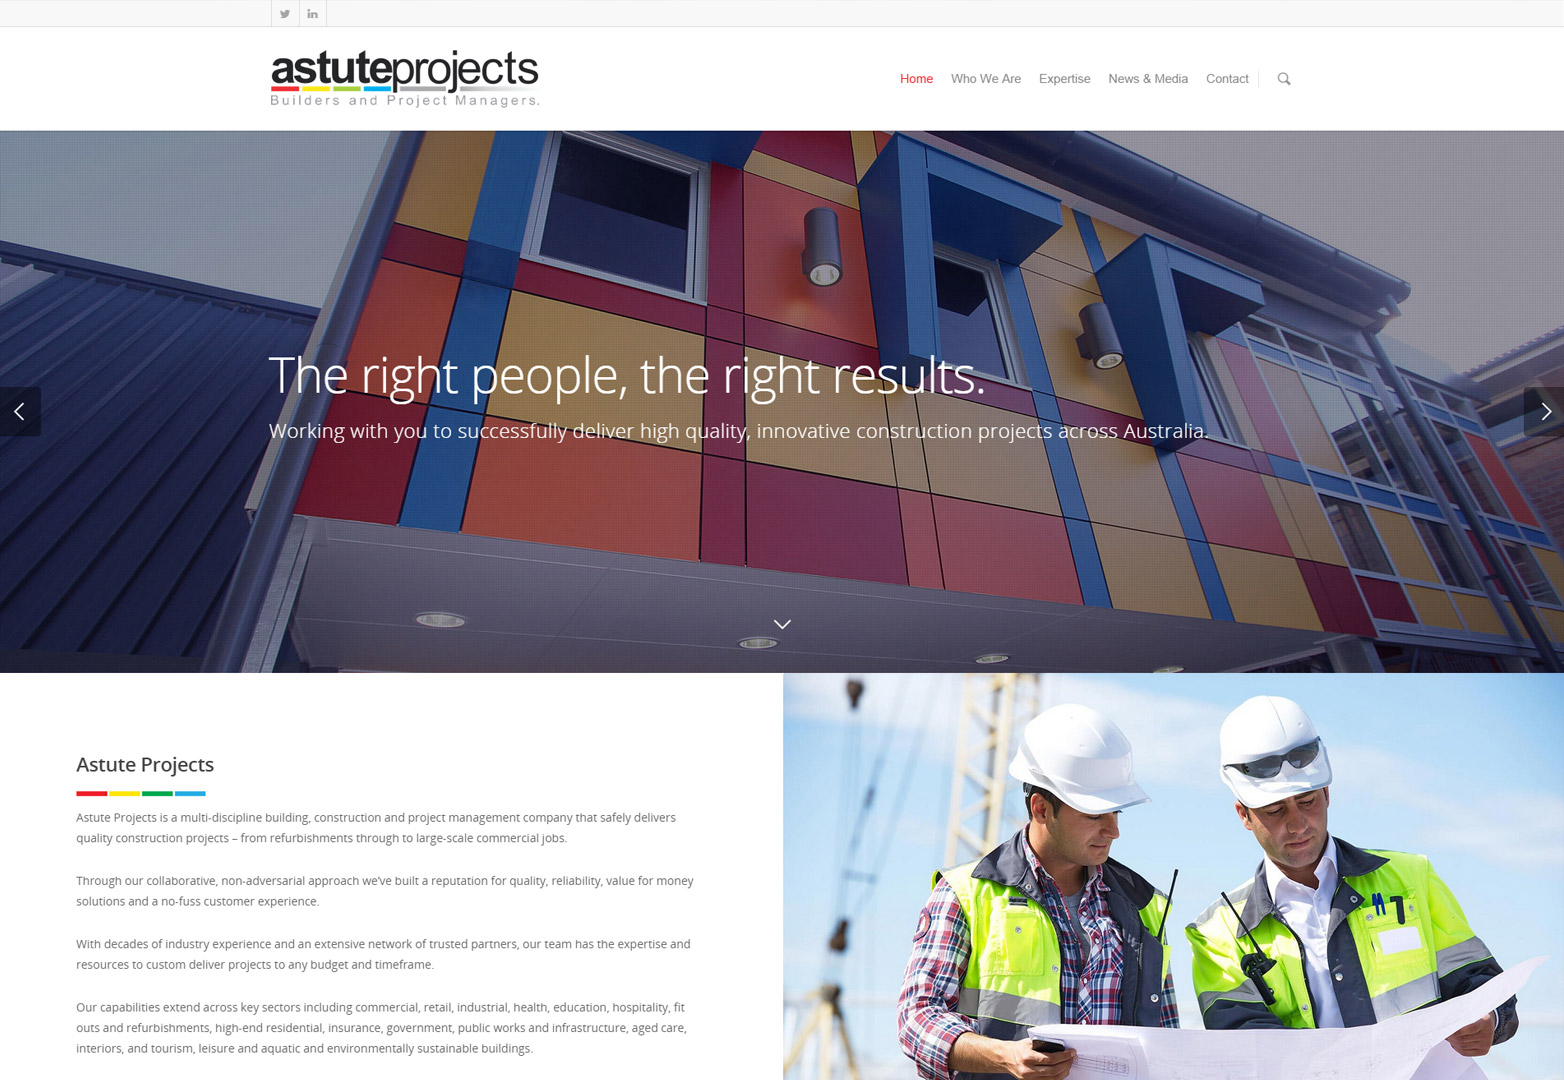 webdesign astute projects homepage desktop view